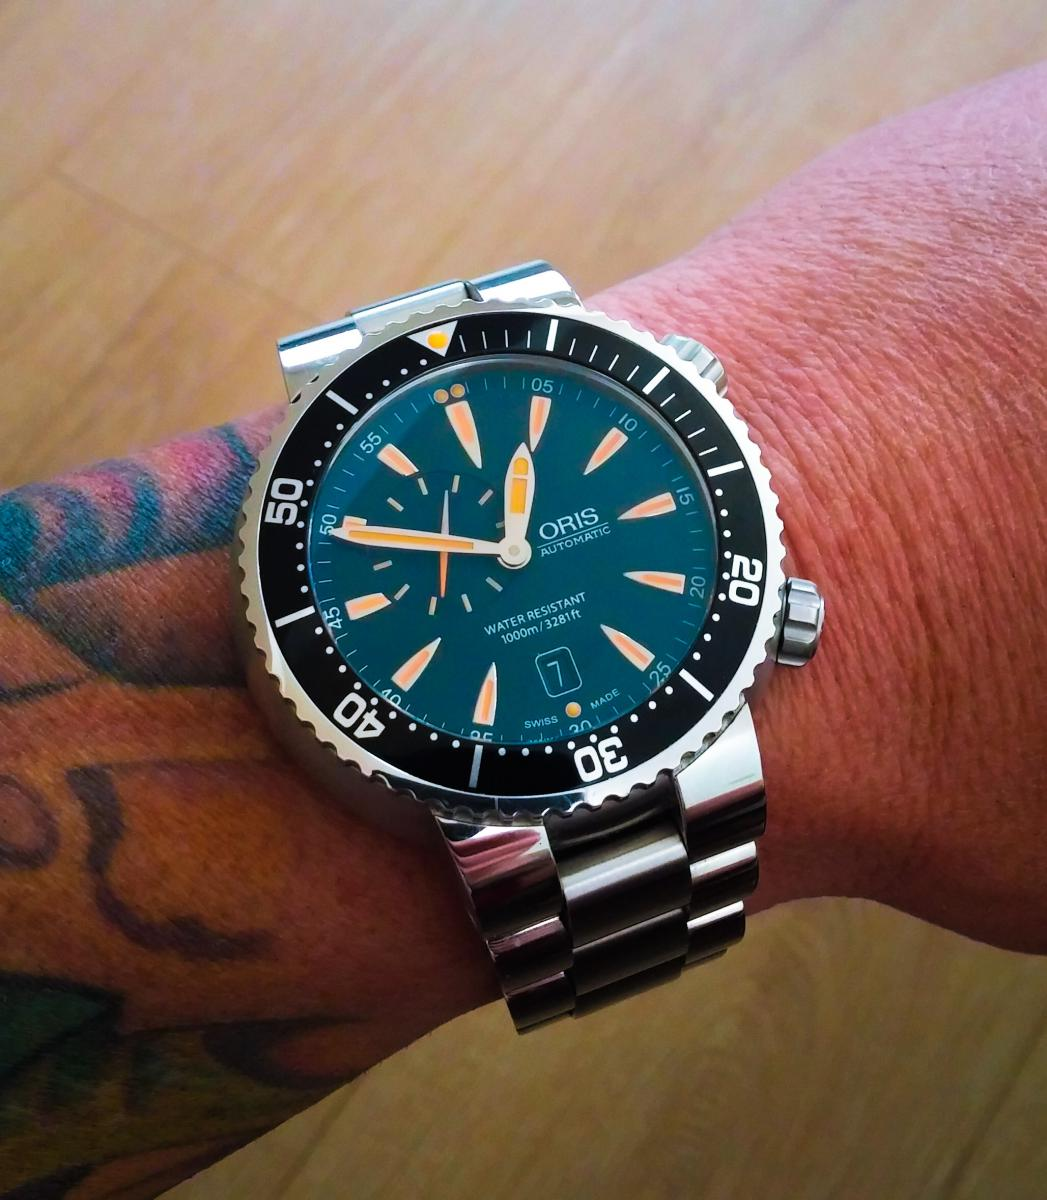 THE Oris Picture Thread - Post Pictures Of Your Oris Here-uploadfromtaptalk1416875970681.jpg